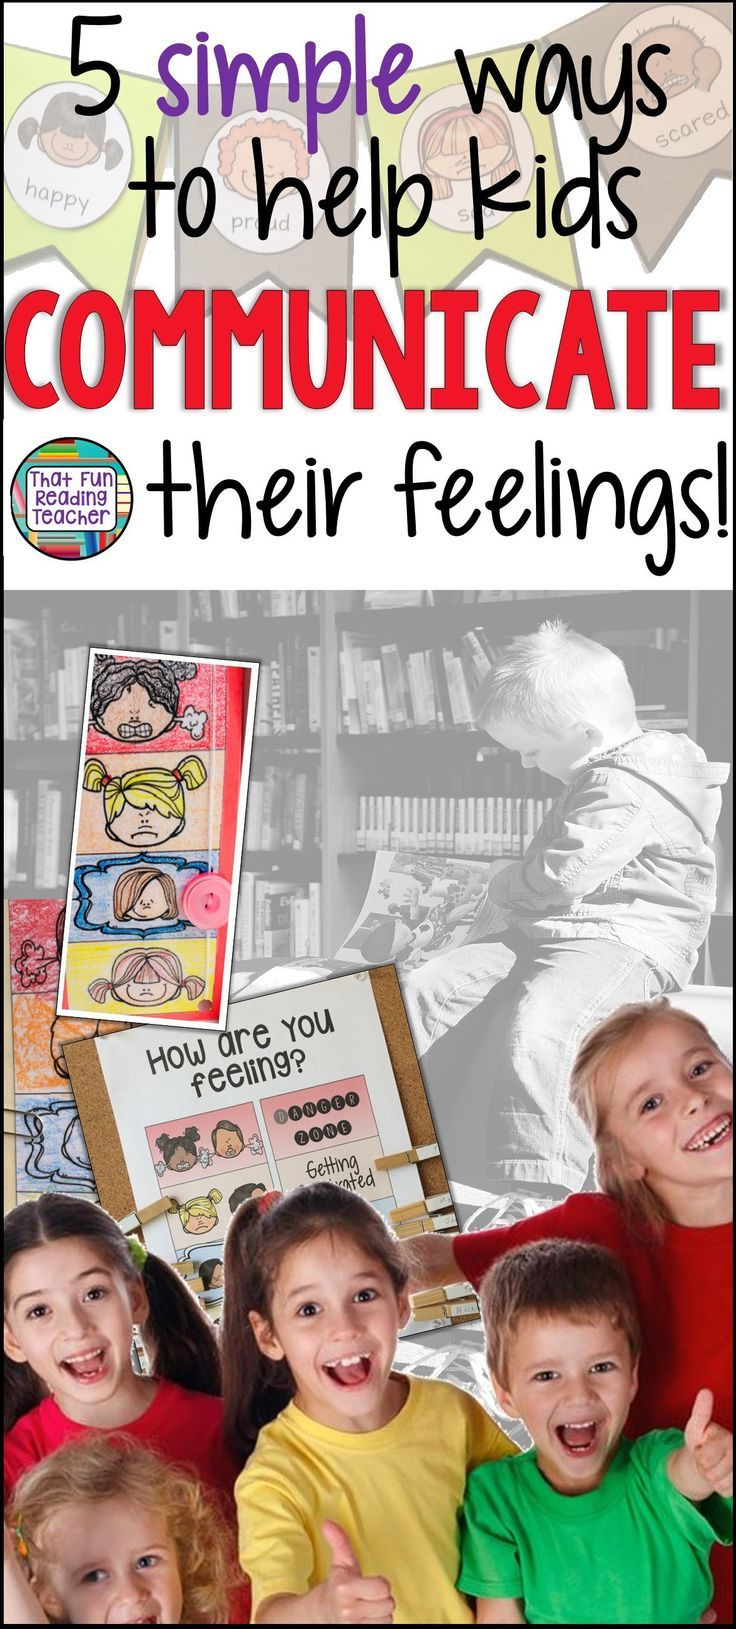 Helping kids communicate their feelings may sound uncomfortable at first, but is easier than you think! Here are five simple ways help children express emotions - and they don't have to use expressive language at all! #feelings #regulateemotions #socialskills #specialeducation #kindergarten #iteachprimary #communication